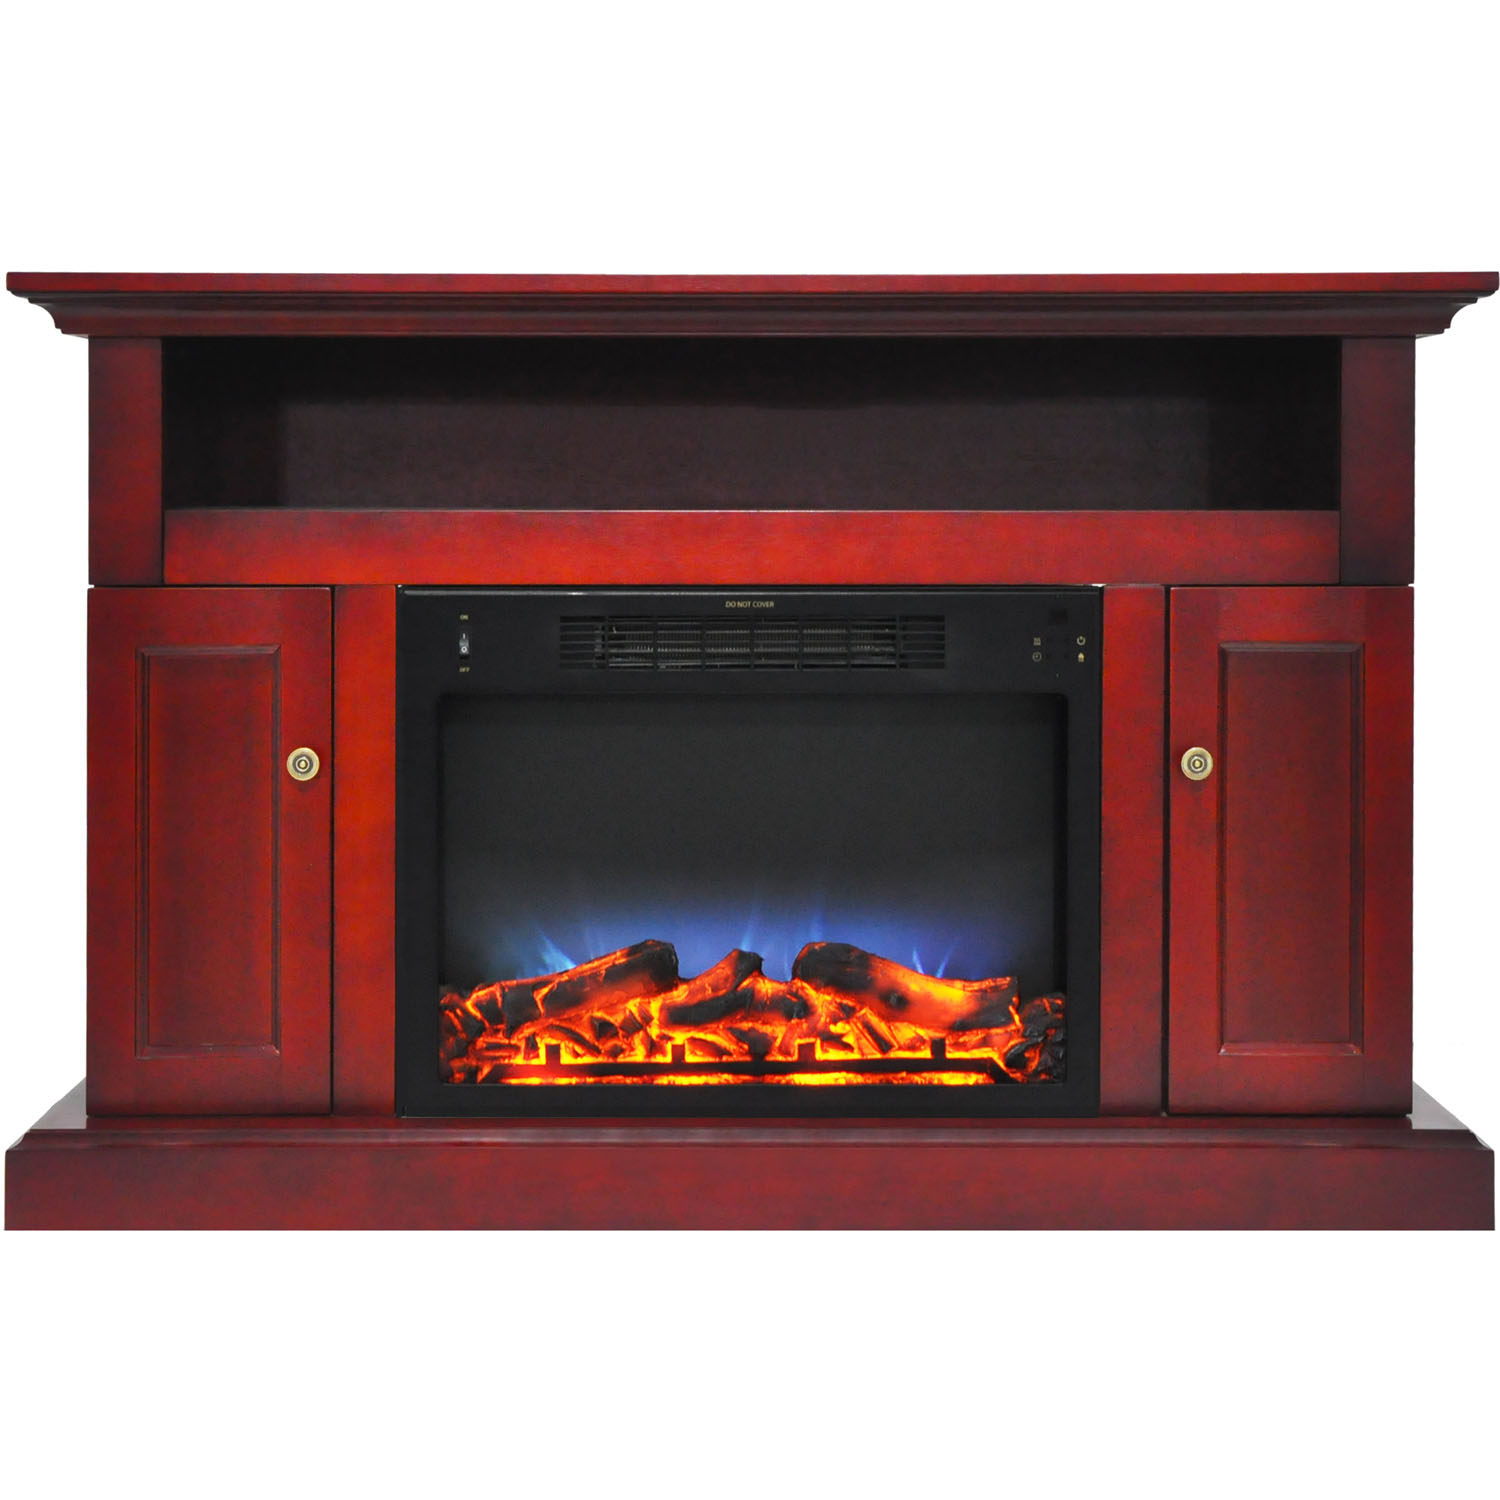 "Cambridge Sorrento Electric Fireplace Heater with 47"" Entertainment Stand and Multi-Color LED Flame Display"